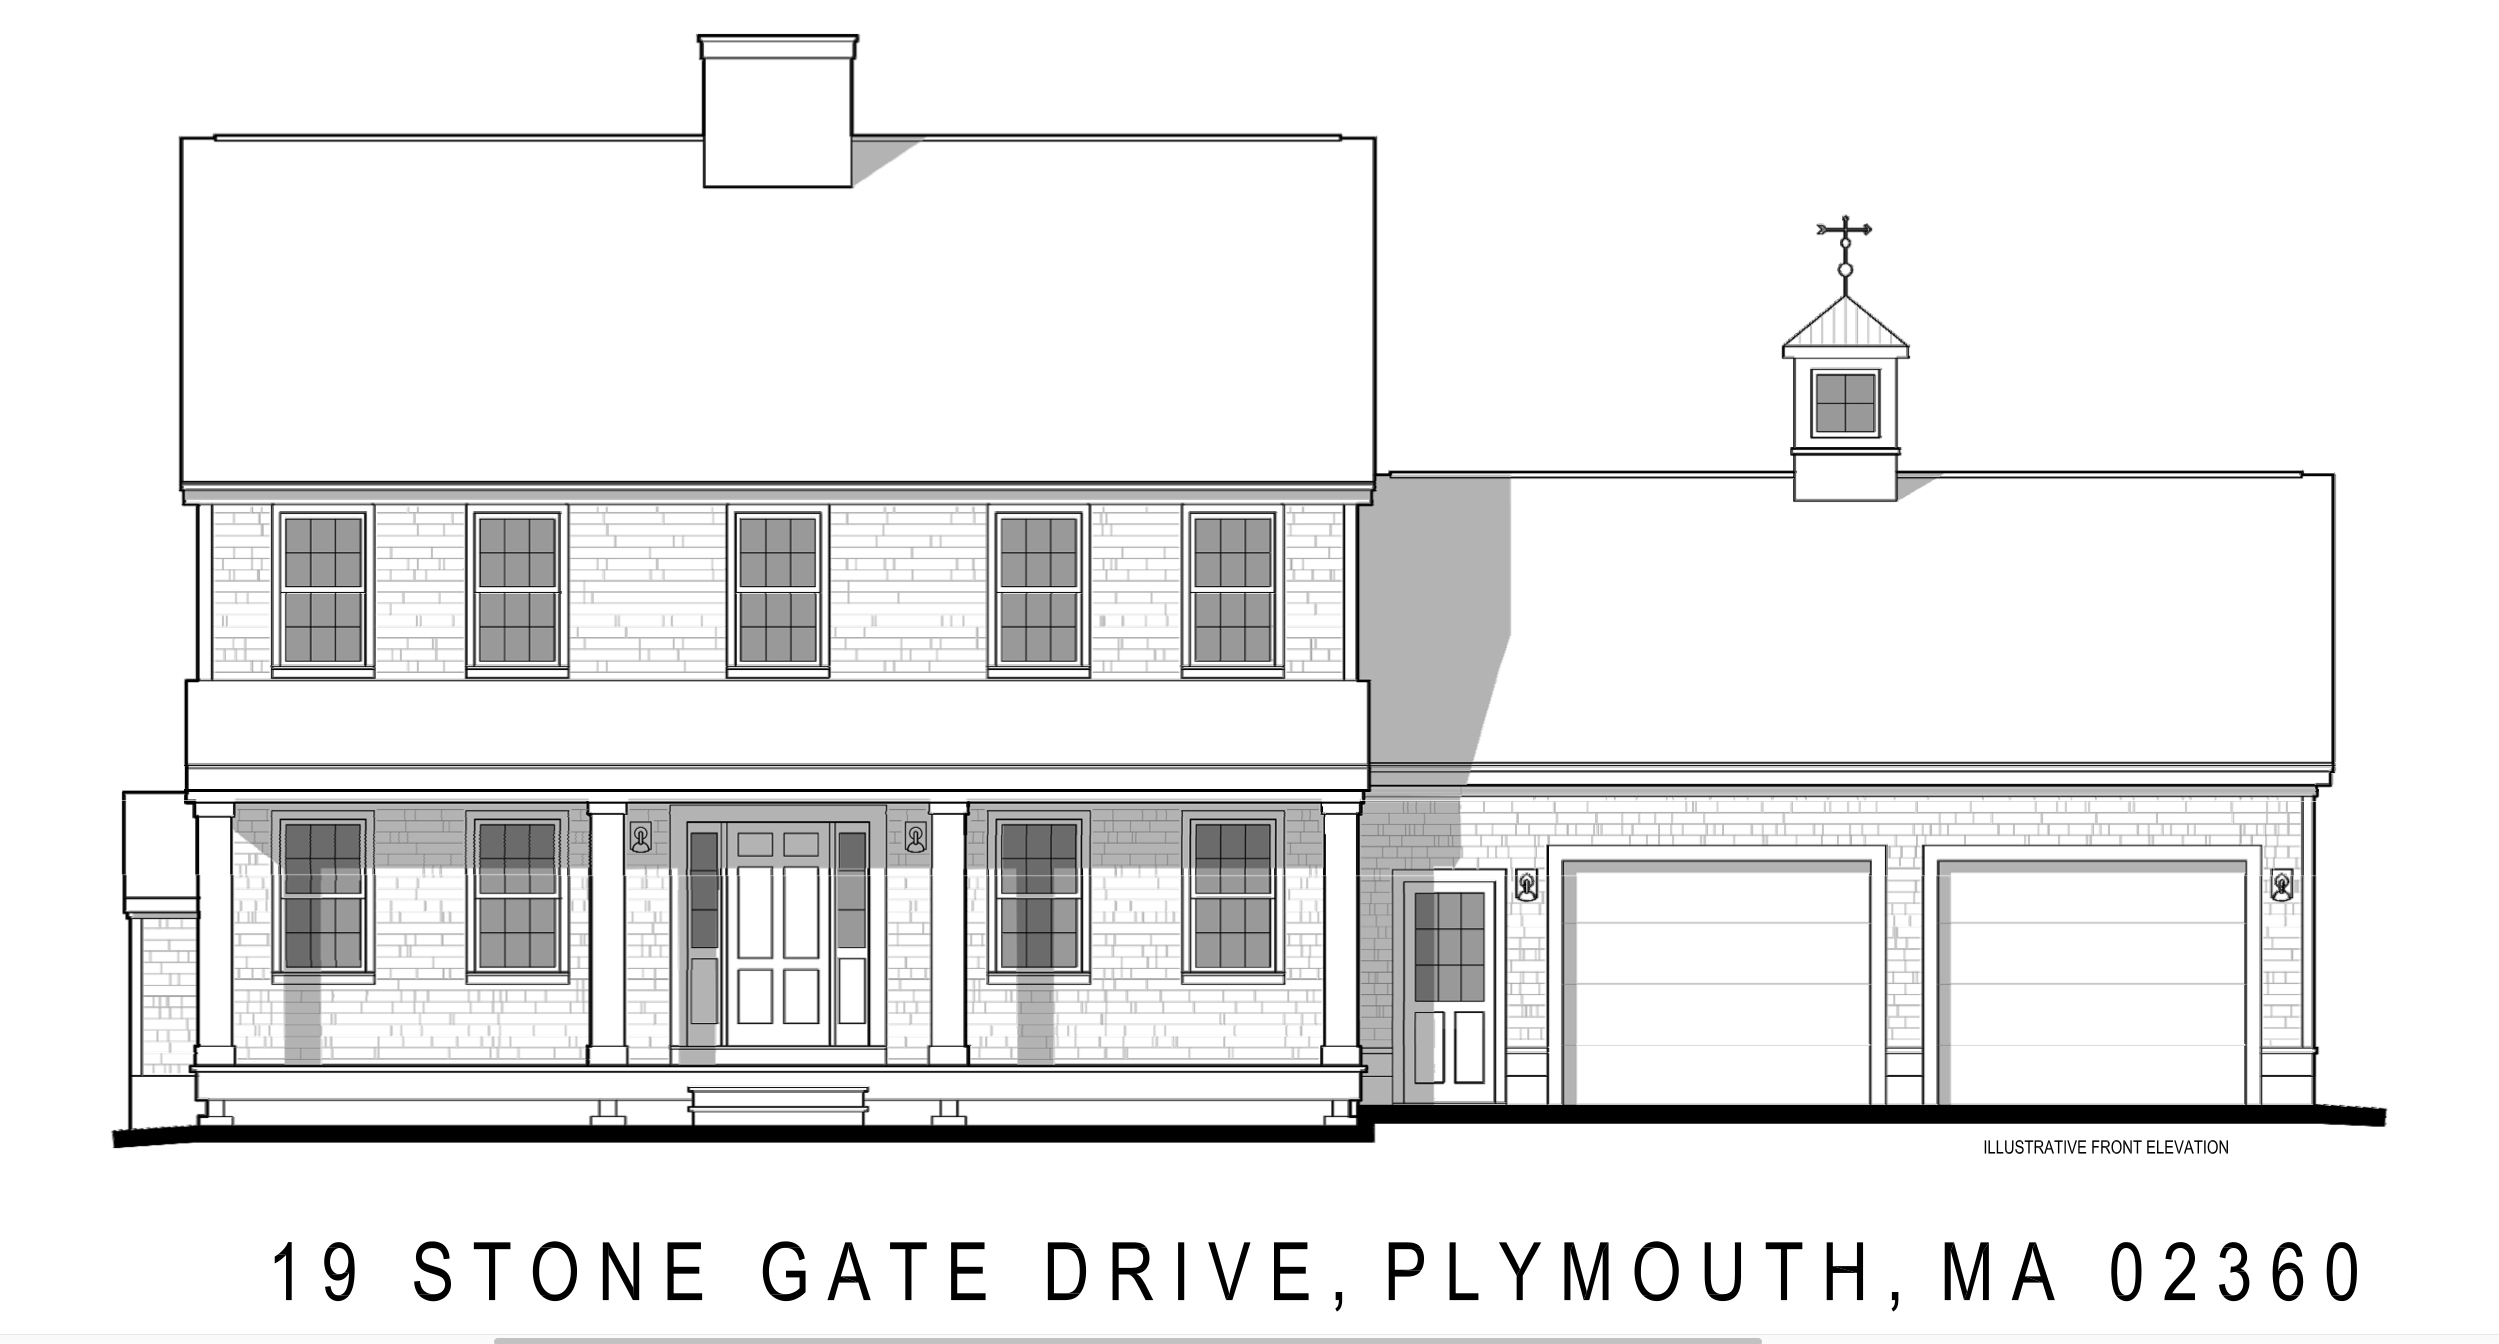 2019-01-11 - 19 sgd front elevation from plans.jpg